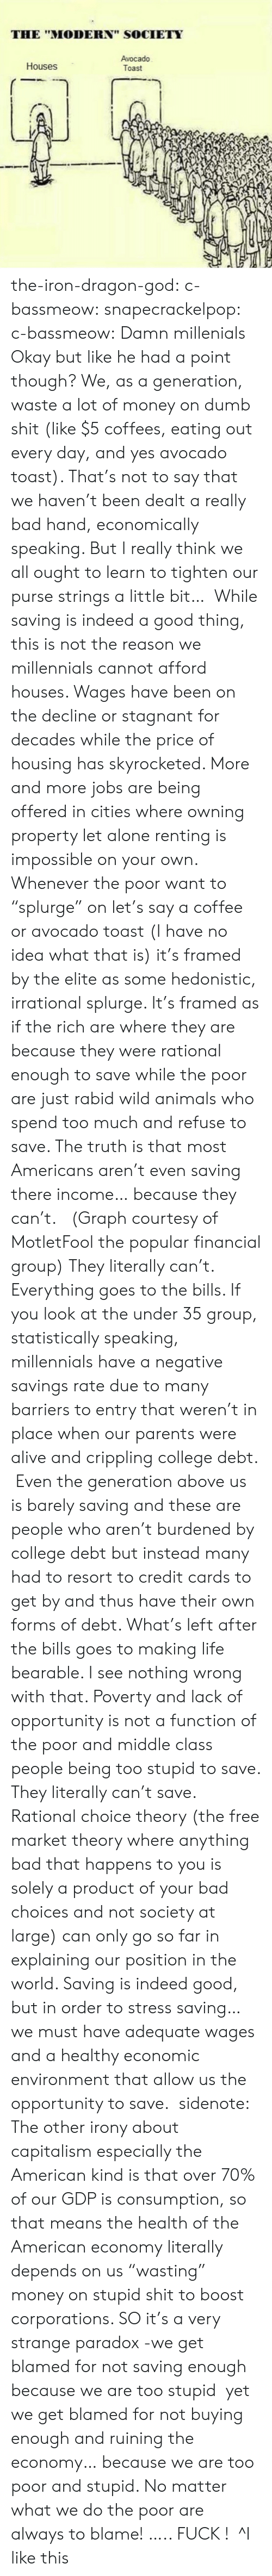 """Resort To: THE """"MODERN"""" SOCIETY  Avocado  Toast  Houses the-iron-dragon-god:  c-bassmeow:  snapecrackelpop:  c-bassmeow: Damn millenials Okay but like he had a point though? We, as a generation, waste a lot of money on dumb shit (like $5 coffees, eating out every day, and yes avocado toast). That's not to say that we haven't been dealt a really bad hand, economically speaking. But I really think we all ought to learn to tighten our purse strings a little bit…  While saving is indeed a good thing, this is not the reason we millennials cannot afford houses. Wages have been on the decline or stagnant for decades while the price of housing has skyrocketed. More and more jobs are being offered in cities where owning property let alone renting is  impossible on your own. Whenever the poor want to """"splurge"""" on let's say a coffee or avocado toast (I have no idea what that is) it's framed by the elite as some hedonistic, irrational splurge. It's framed as if the rich are where they are because they were rational enough to save while the poor are just rabid wild animals who spend too much and refuse to save. The truth is that most Americans aren't even saving there income… because they can't. (Graph courtesy of MotletFool the popular financial group) They literally can't. Everything goes to the bills. If you look at the under 35 group, statistically speaking, millennials have a negative savings rate due to many barriers to entry that weren't in place when our parents were alive and crippling college debt. Even the generation above us is barely saving and these are people who aren't burdened by college debt but instead many had to resort to credit cards to get by and thus have their own forms of debt. What's left after the bills goes to making life bearable. I see nothing wrong with that. Poverty and lack of opportunity is not a function of the poor and middle class people being too stupid to save. They literally can't save. Rational choice theory (the free market theory where"""